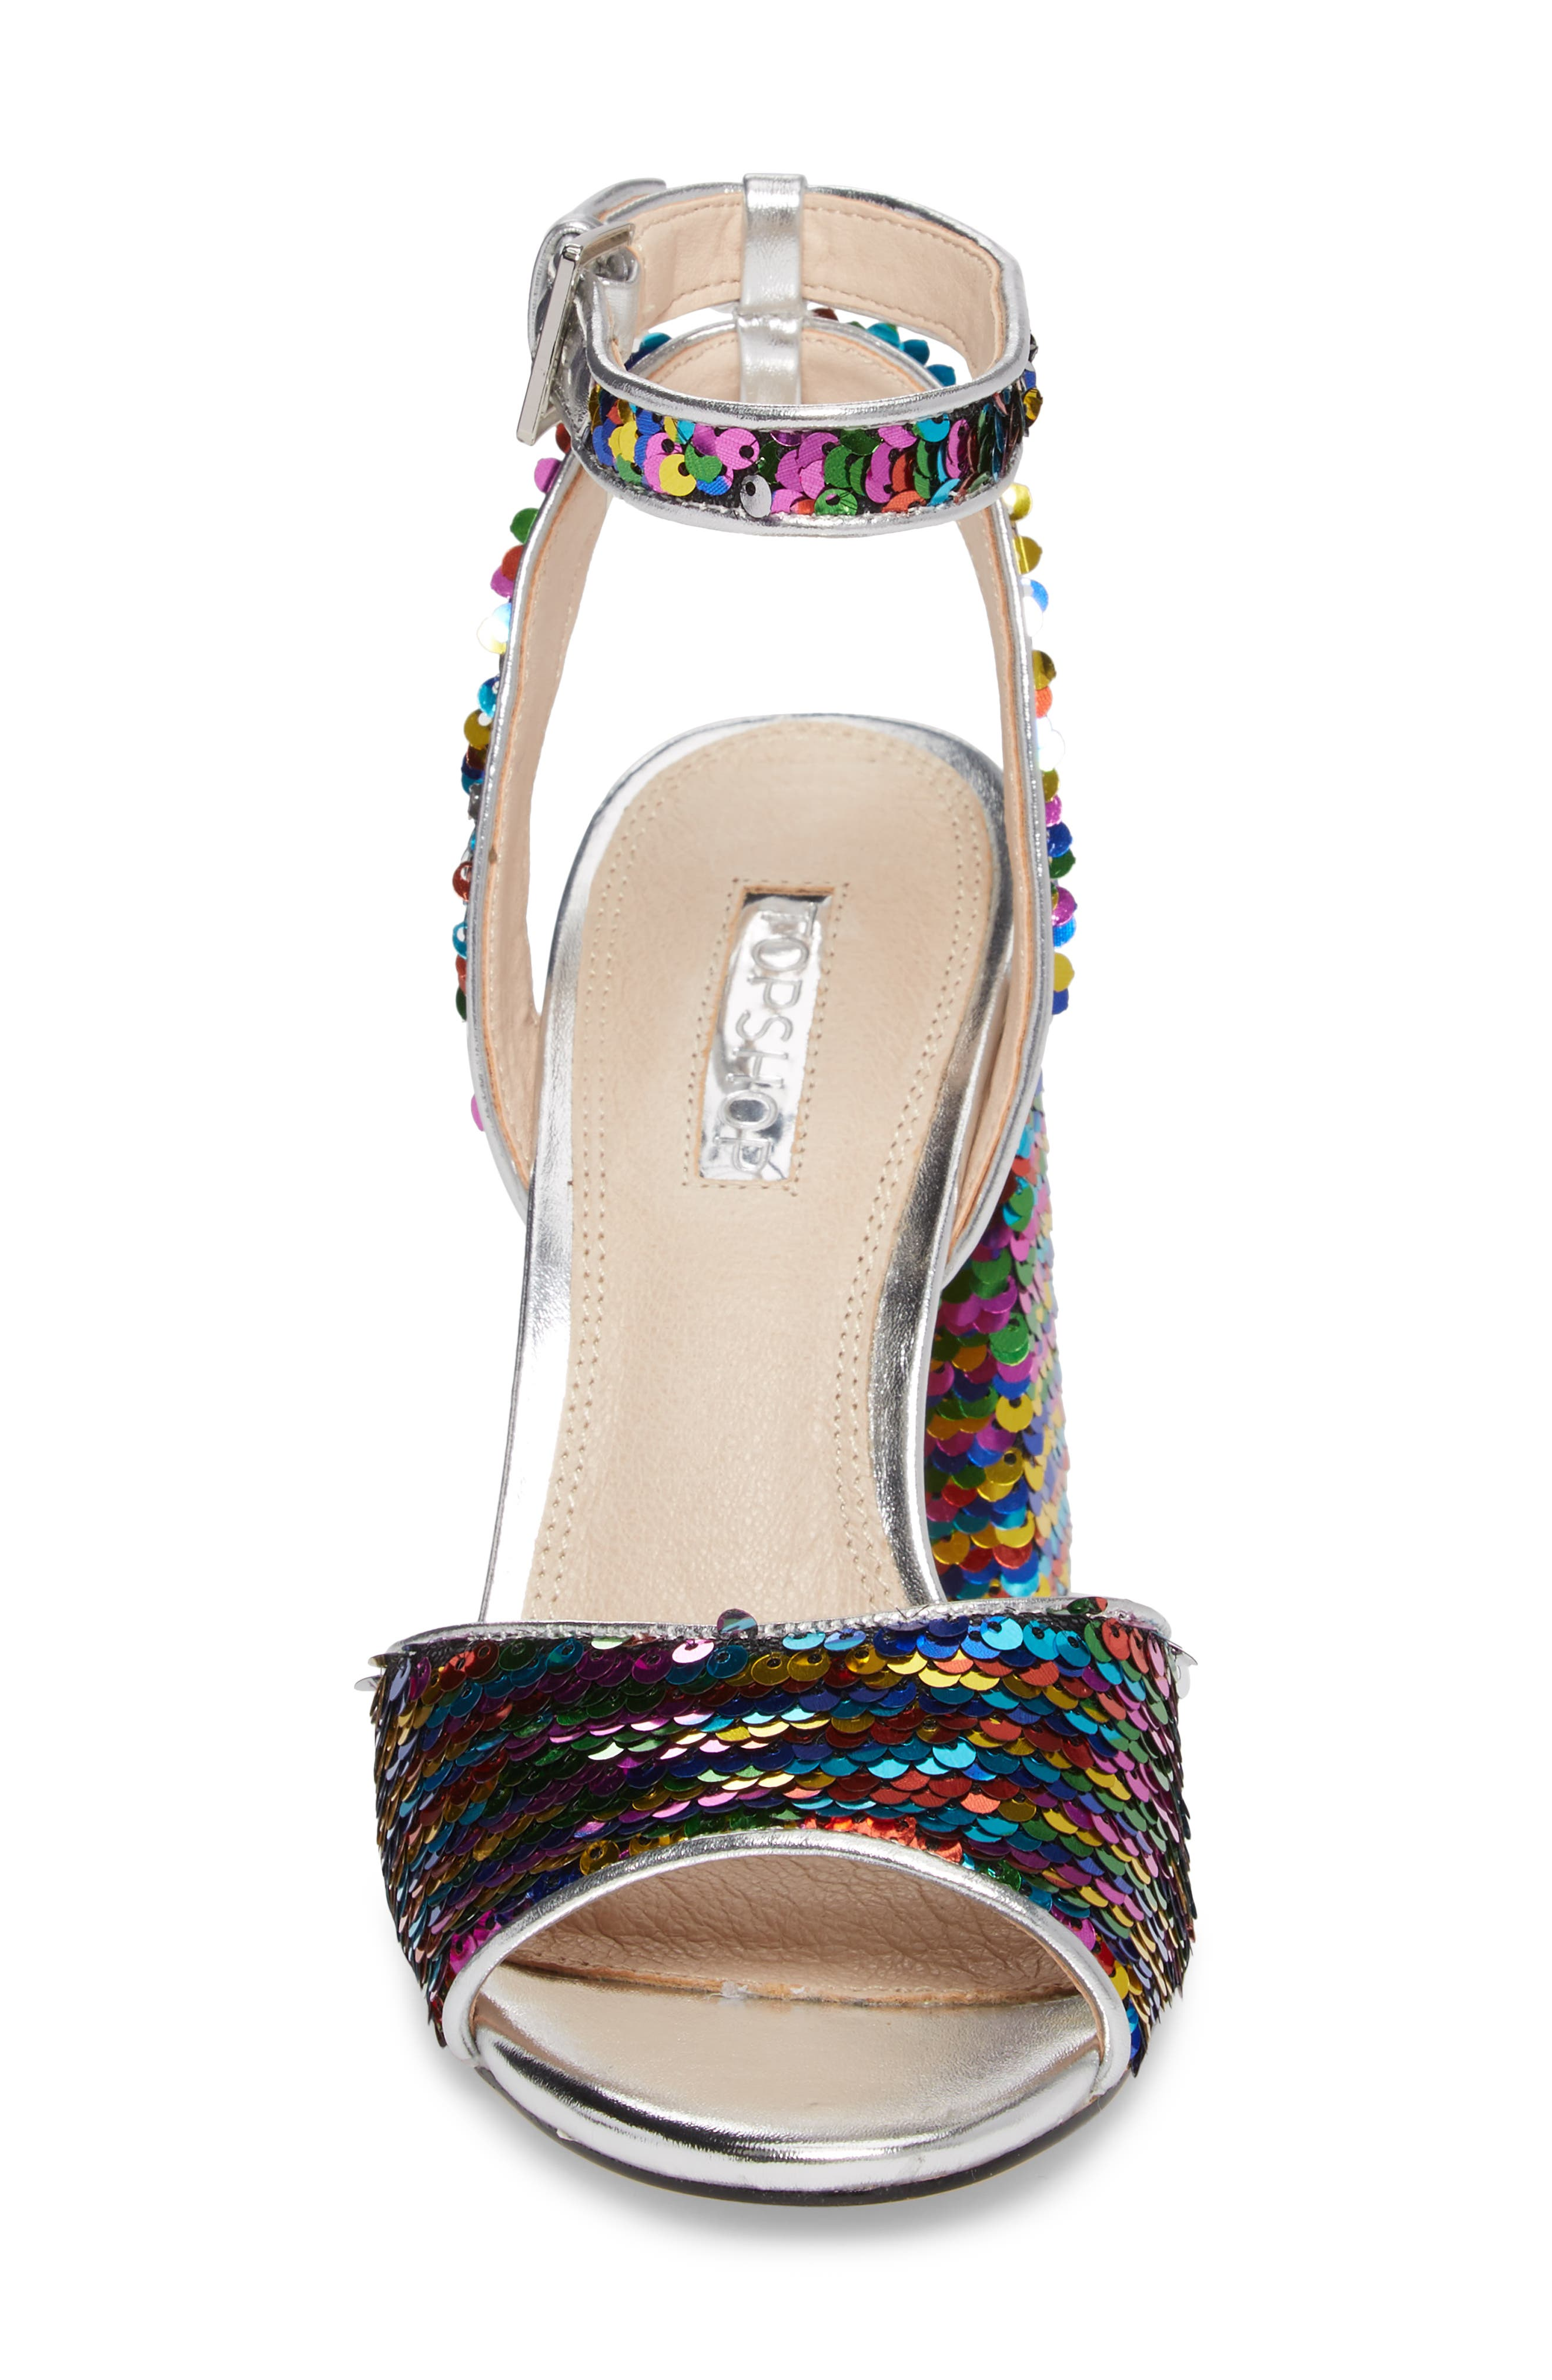 Reaction Sequin Block Heel Sandal,                             Alternate thumbnail 4, color,                             Silver Multi